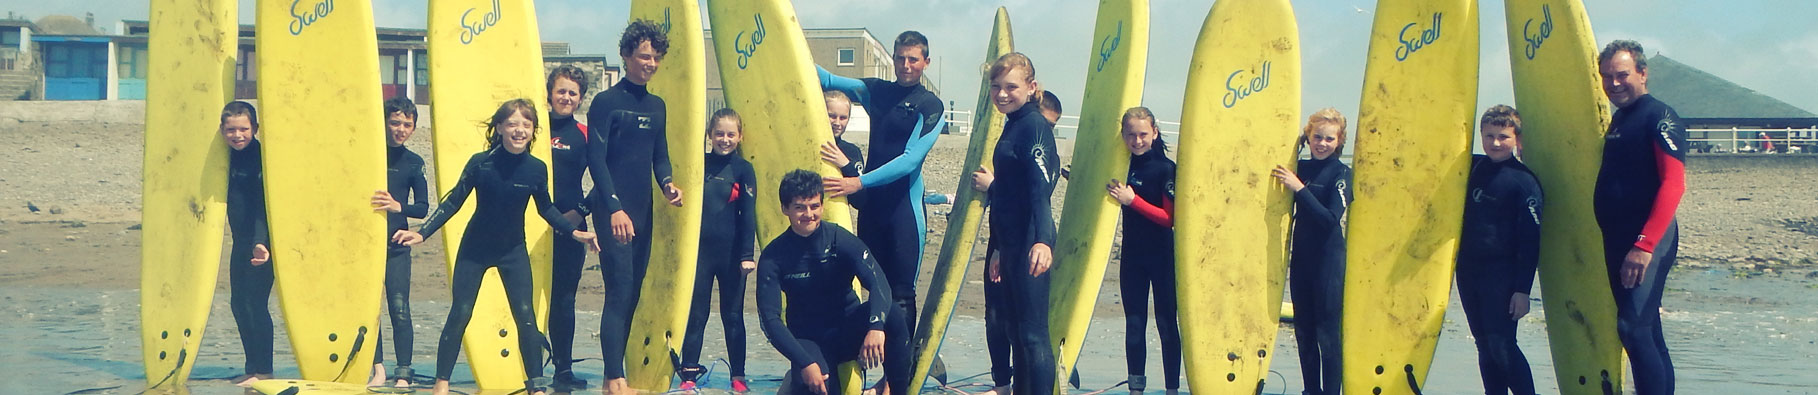 Surfing activity at Shoreline in Bude, Cornwall